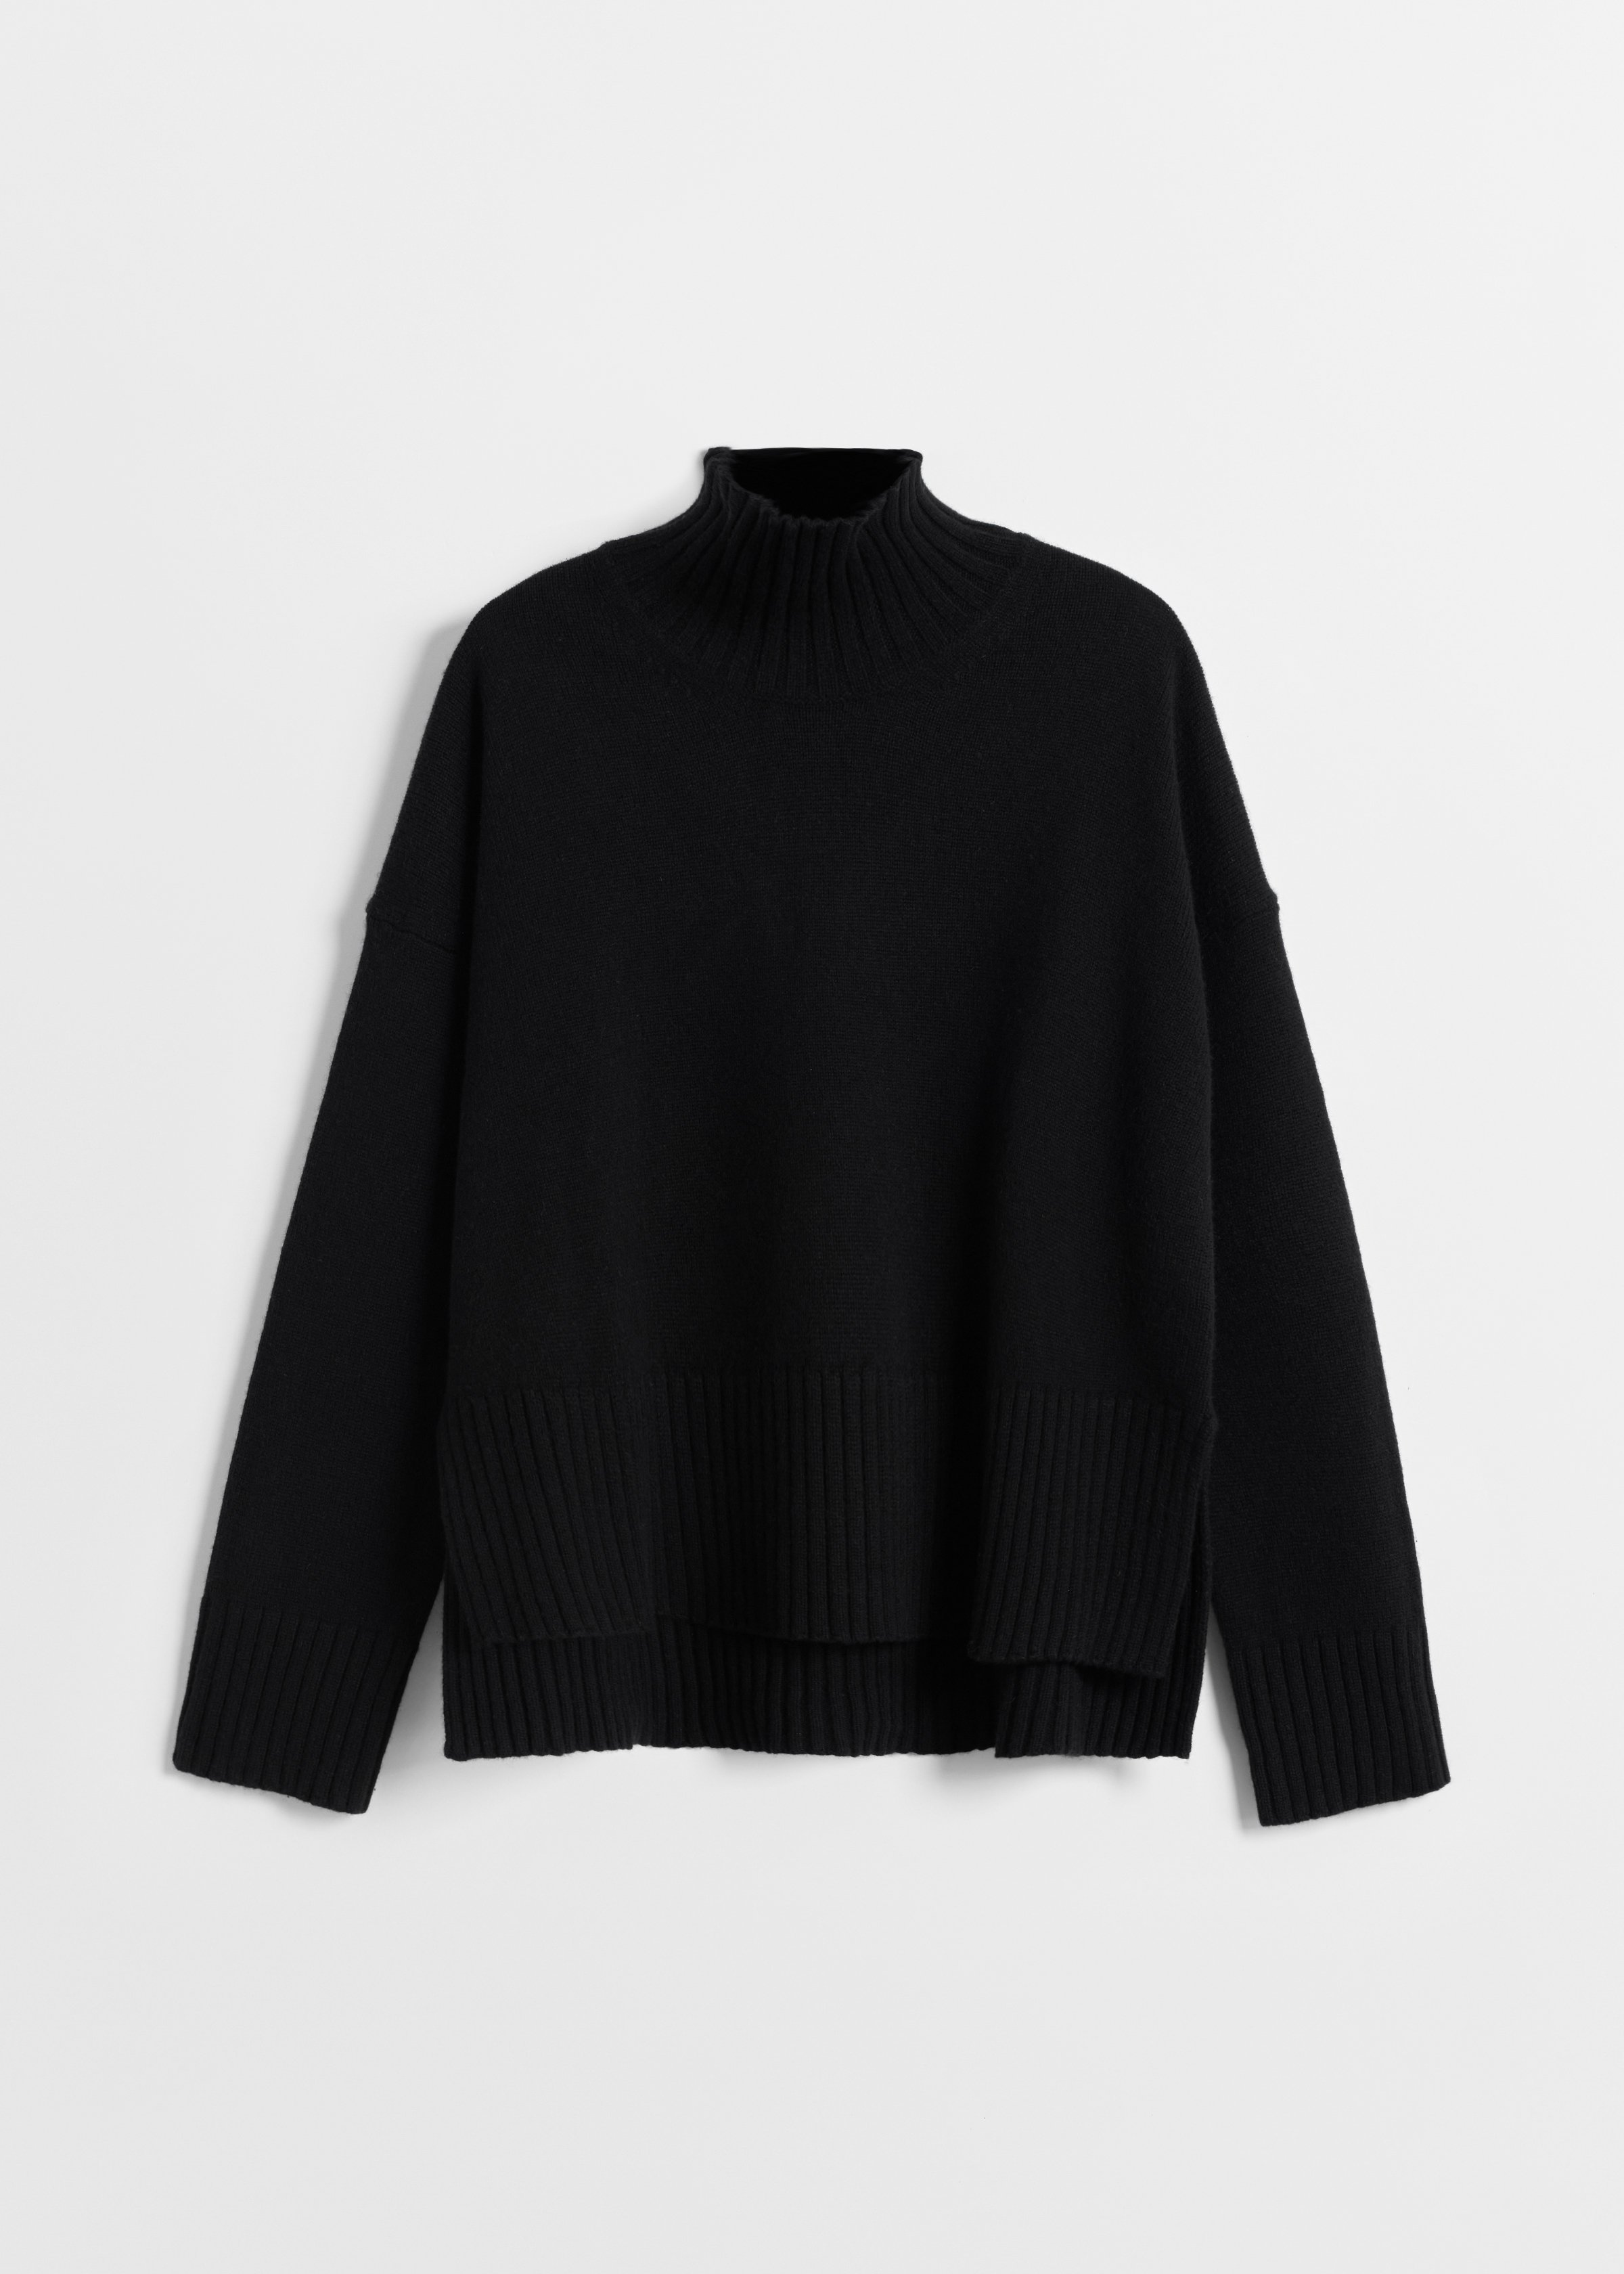 High Neck Sweater in Wool Cashmere - Grey in Black by Co Collections